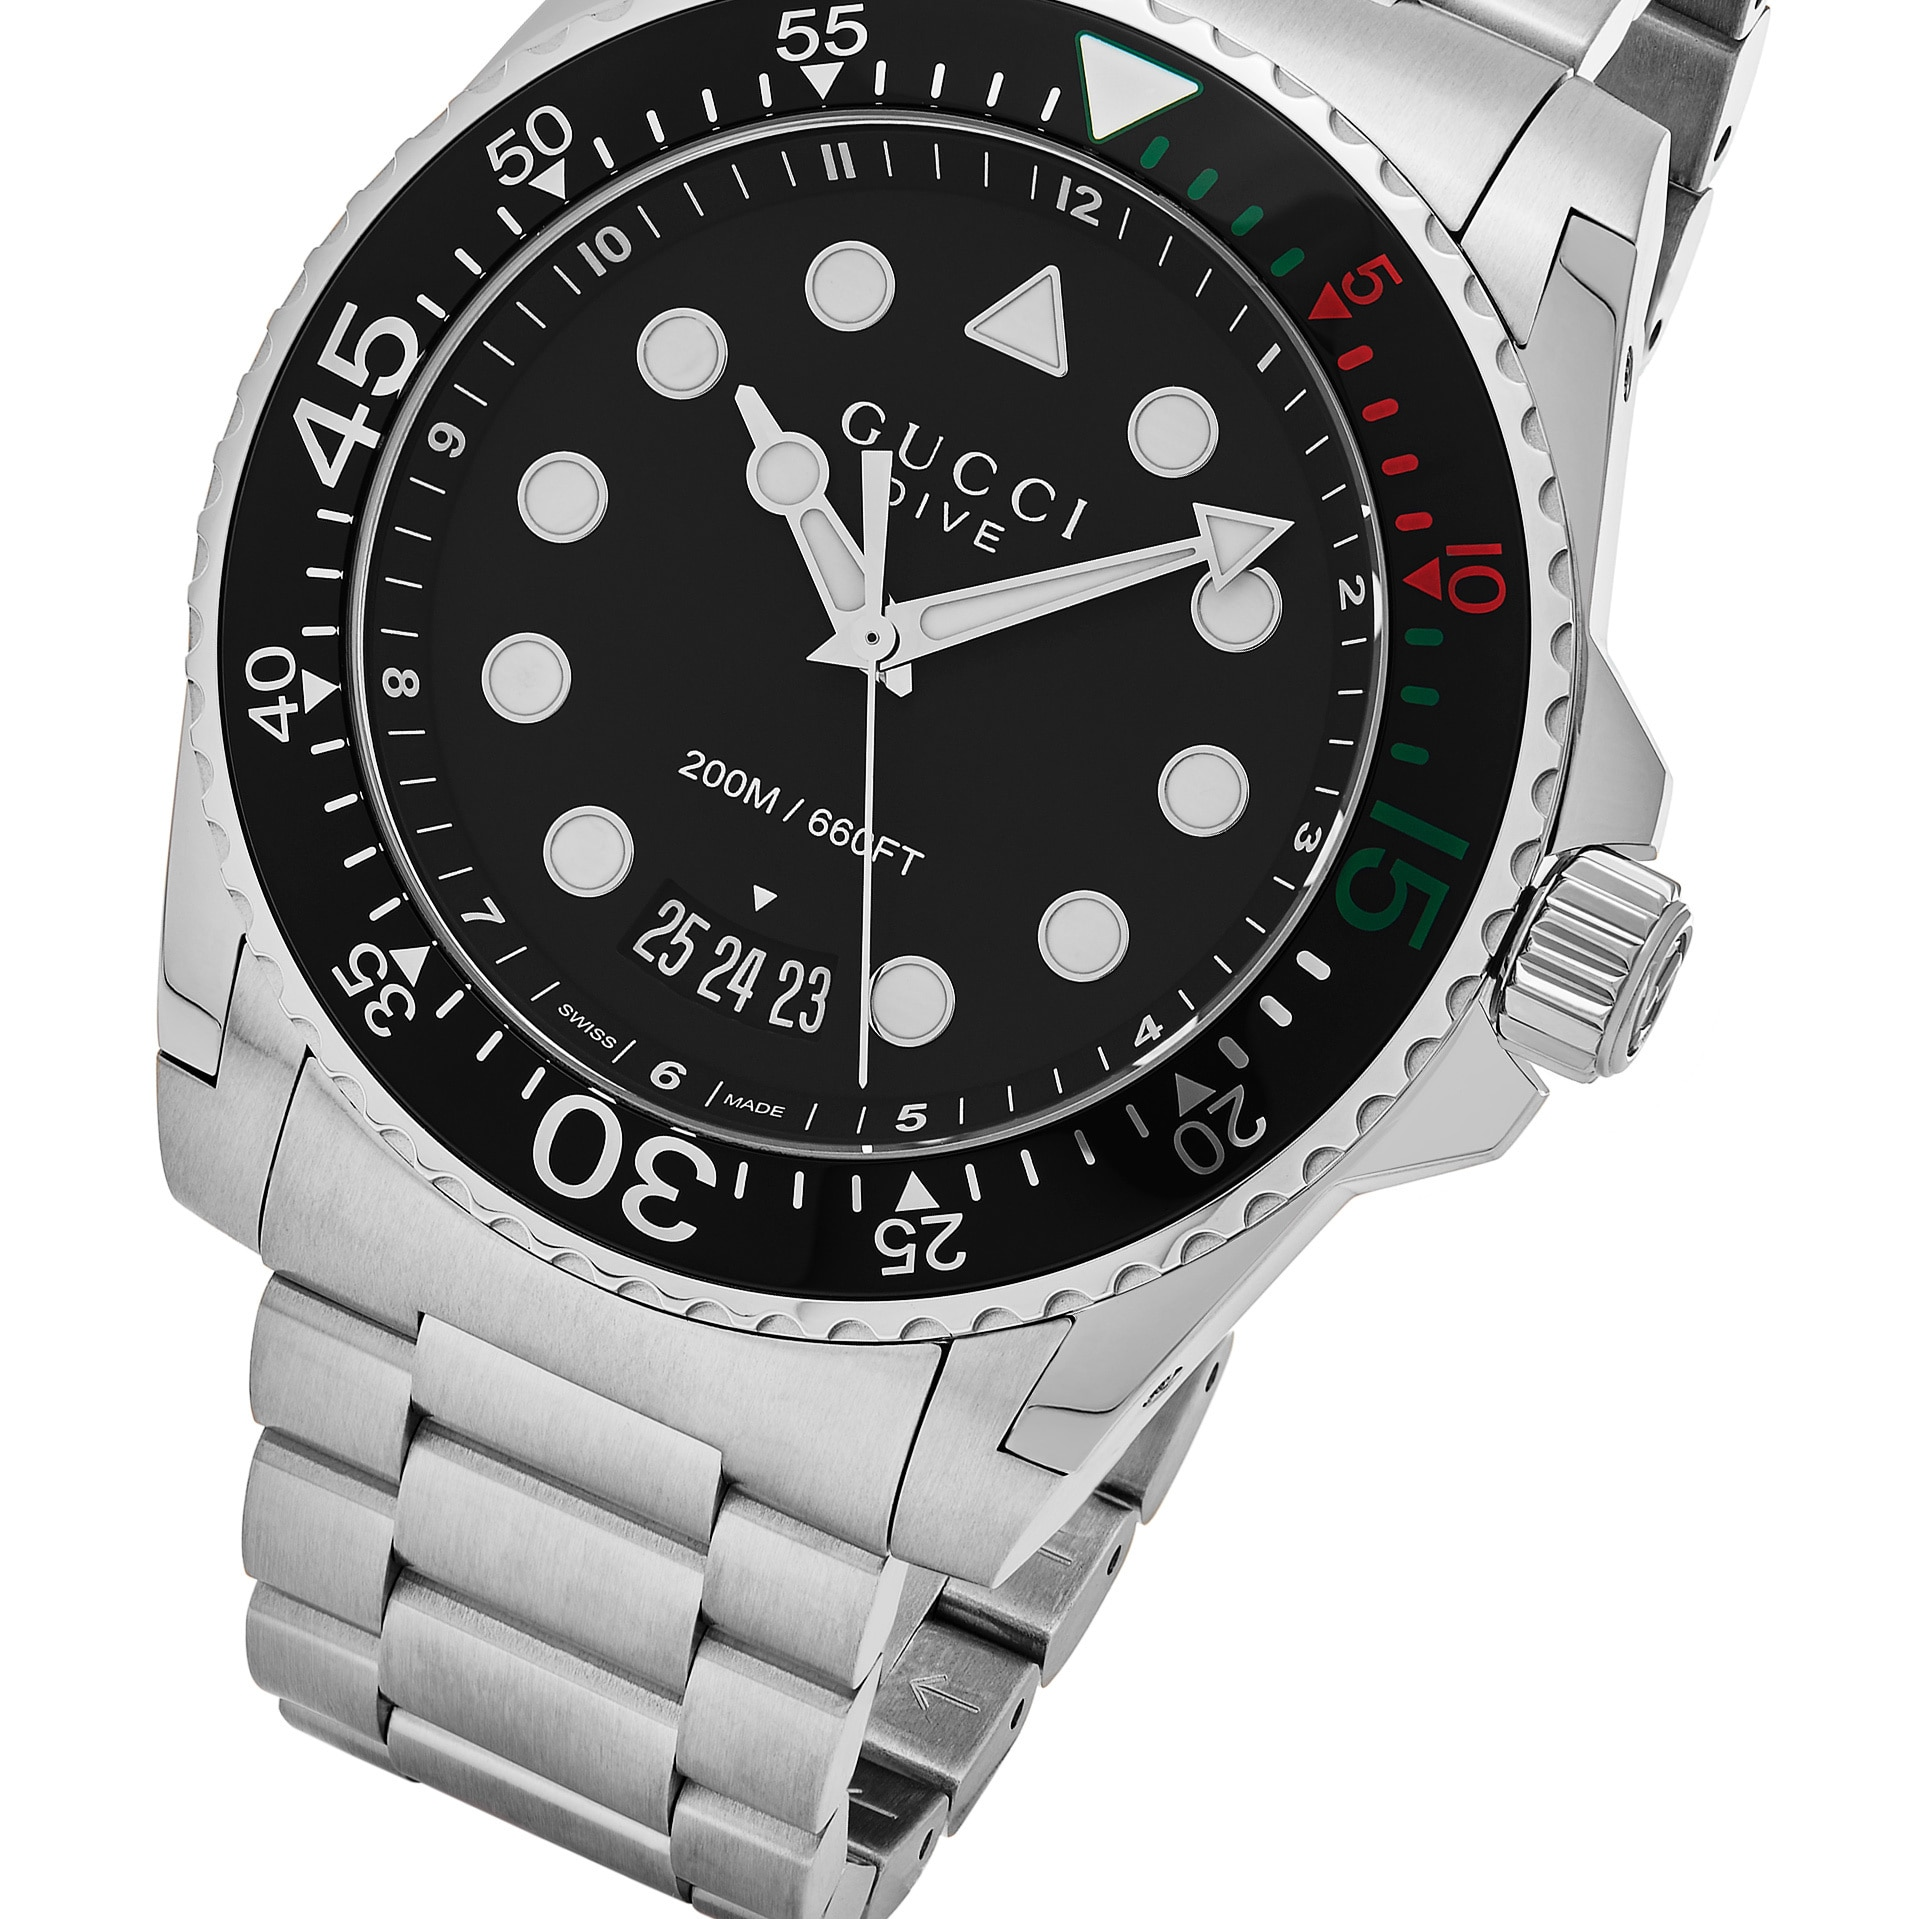 97e633102db Shop Gucci Men s YA136208  Dive XL  Stainless Steel Watch - Free Shipping  Today - Overstock - 13150376